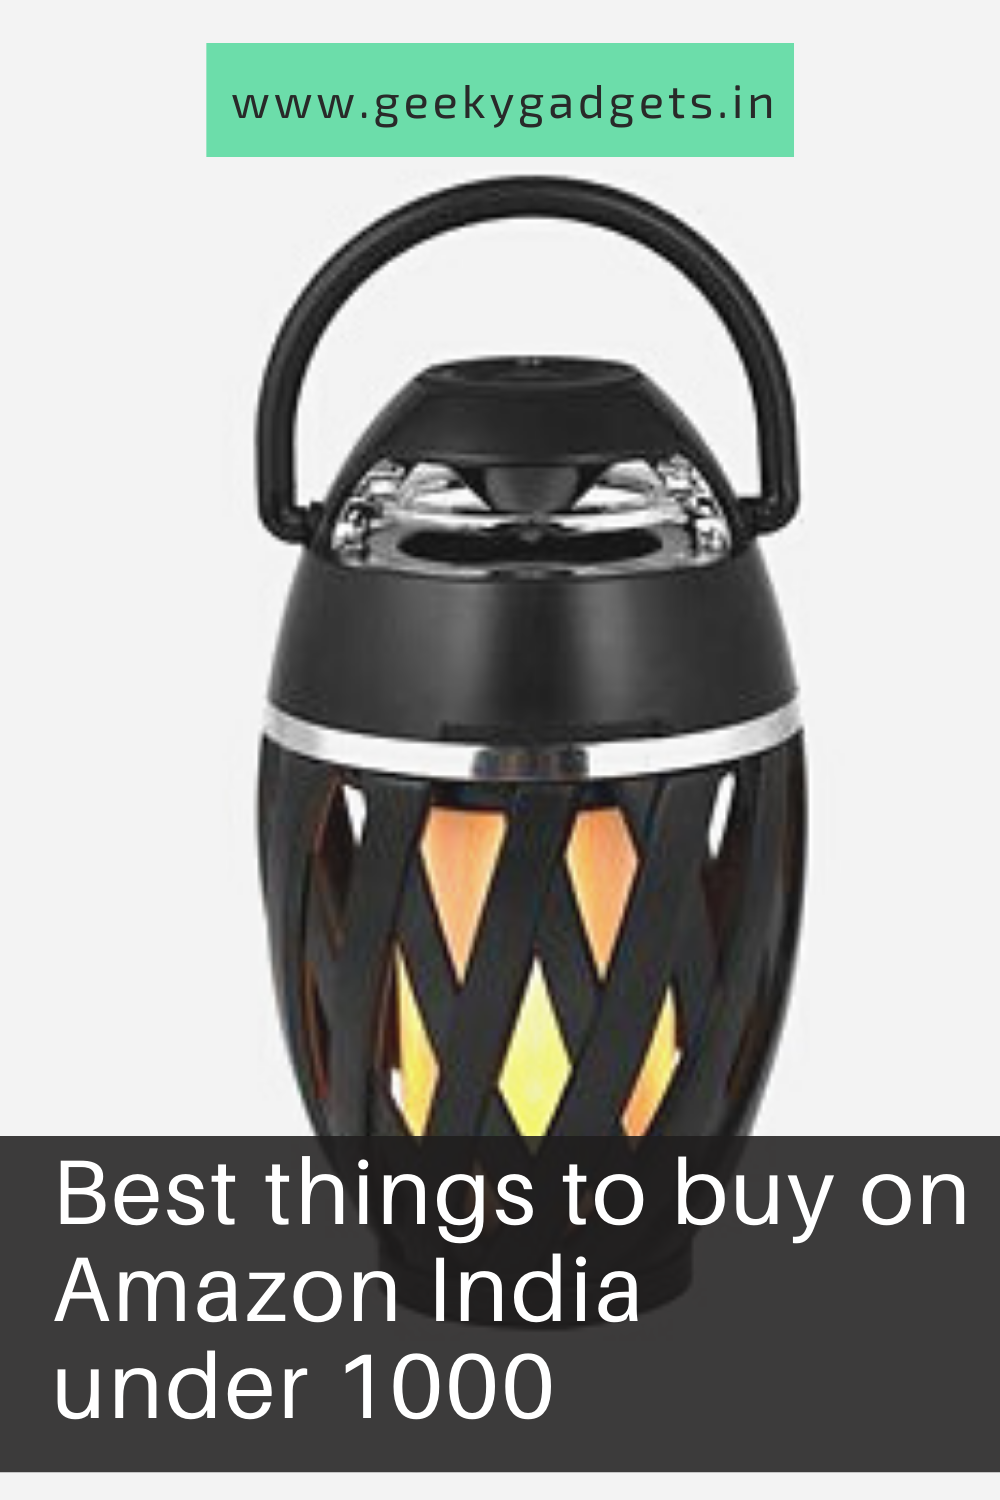 11 Best things to buy on Amazon India under 1000 Rupees in